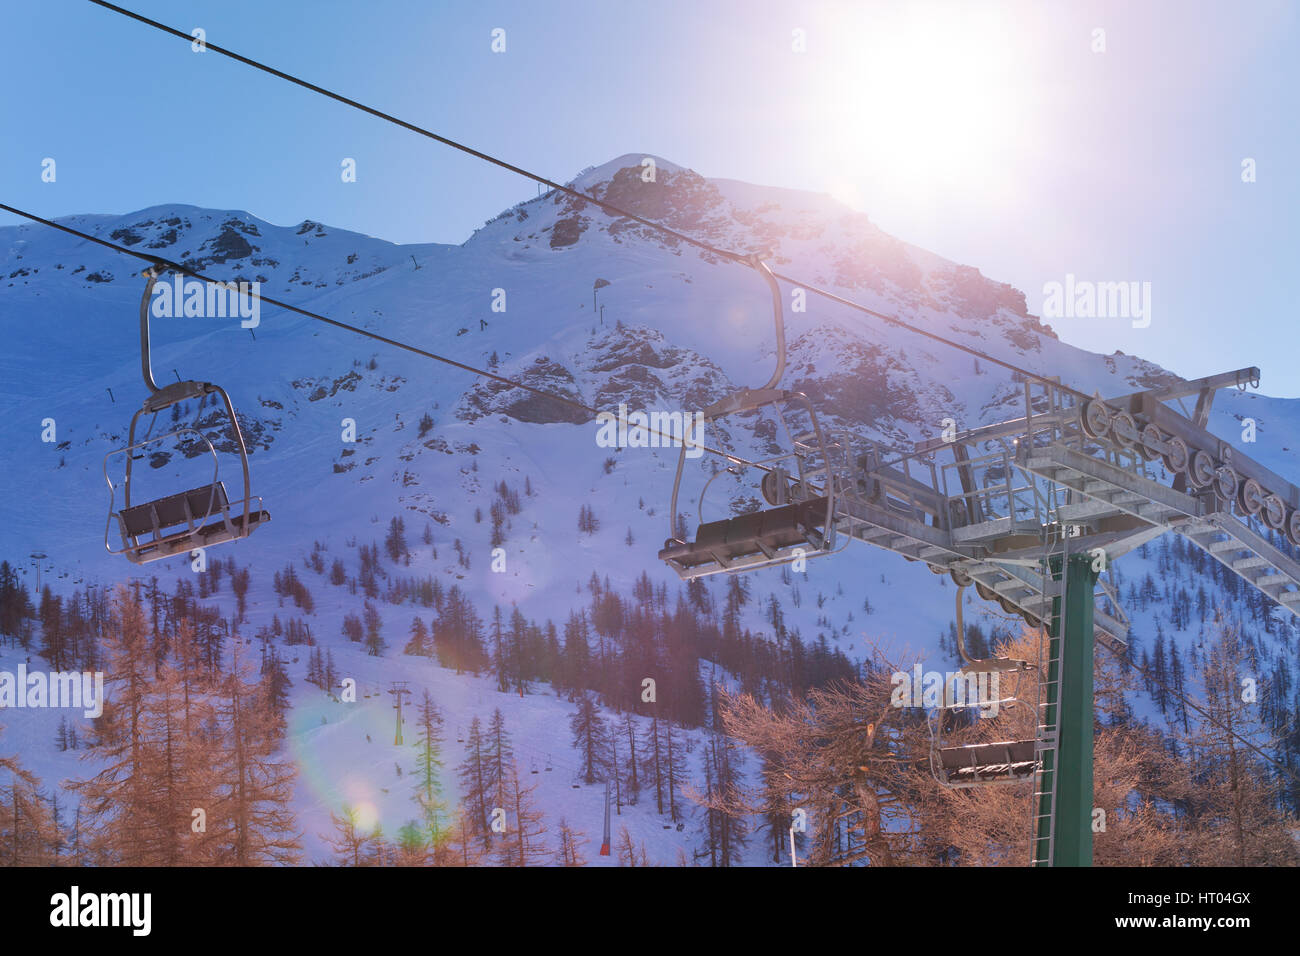 Beautiful mountain scene with empty chairlifts in the foreground at sunny day Stock Photo